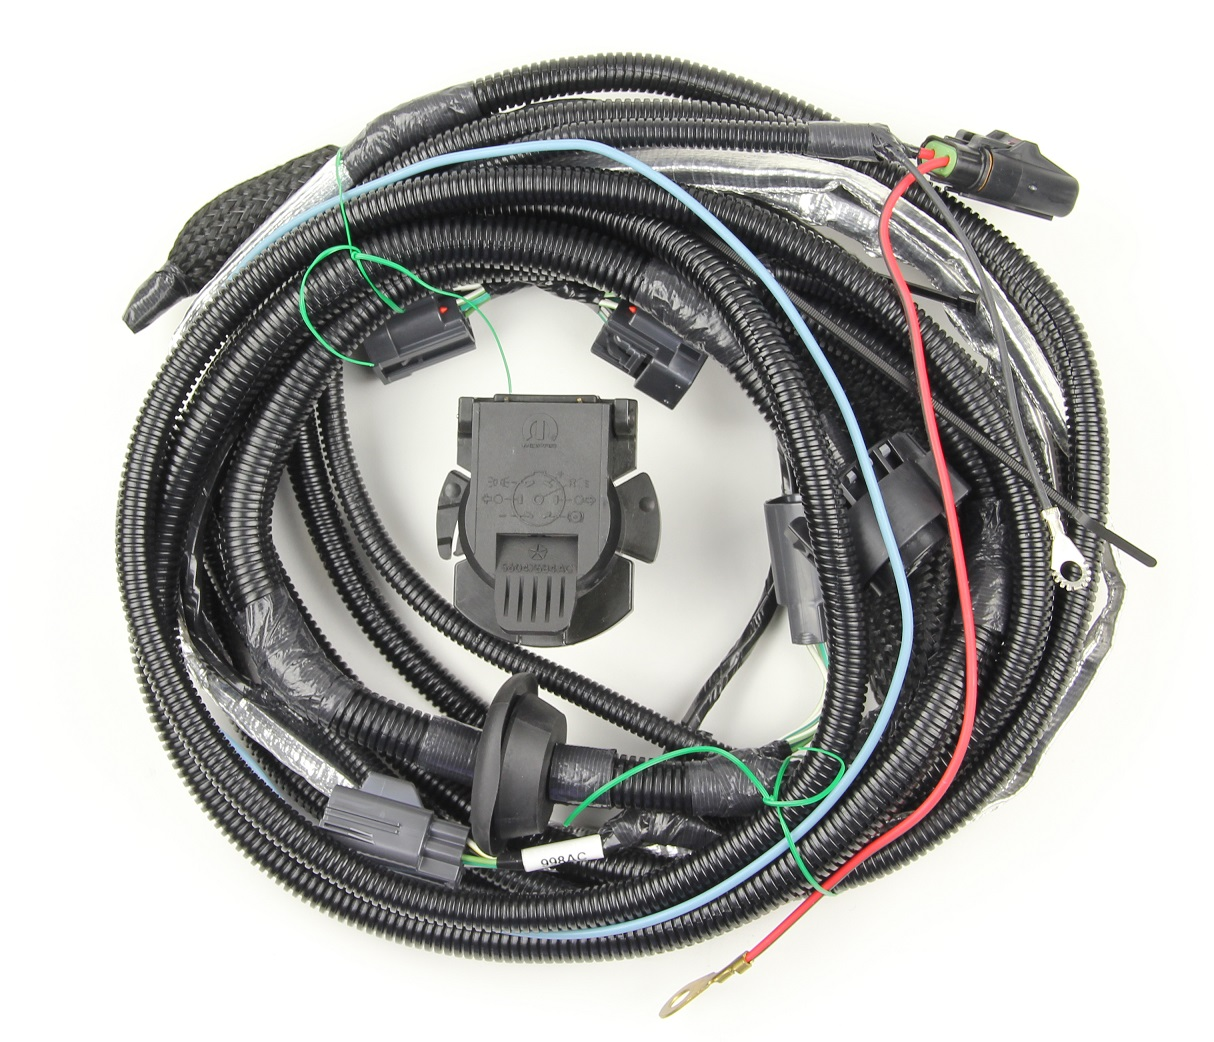 trailer tow wiring harness 23 kk liberty trailer tow wiring harness 82210642ad trailer tow wiring harness at soozxer.org